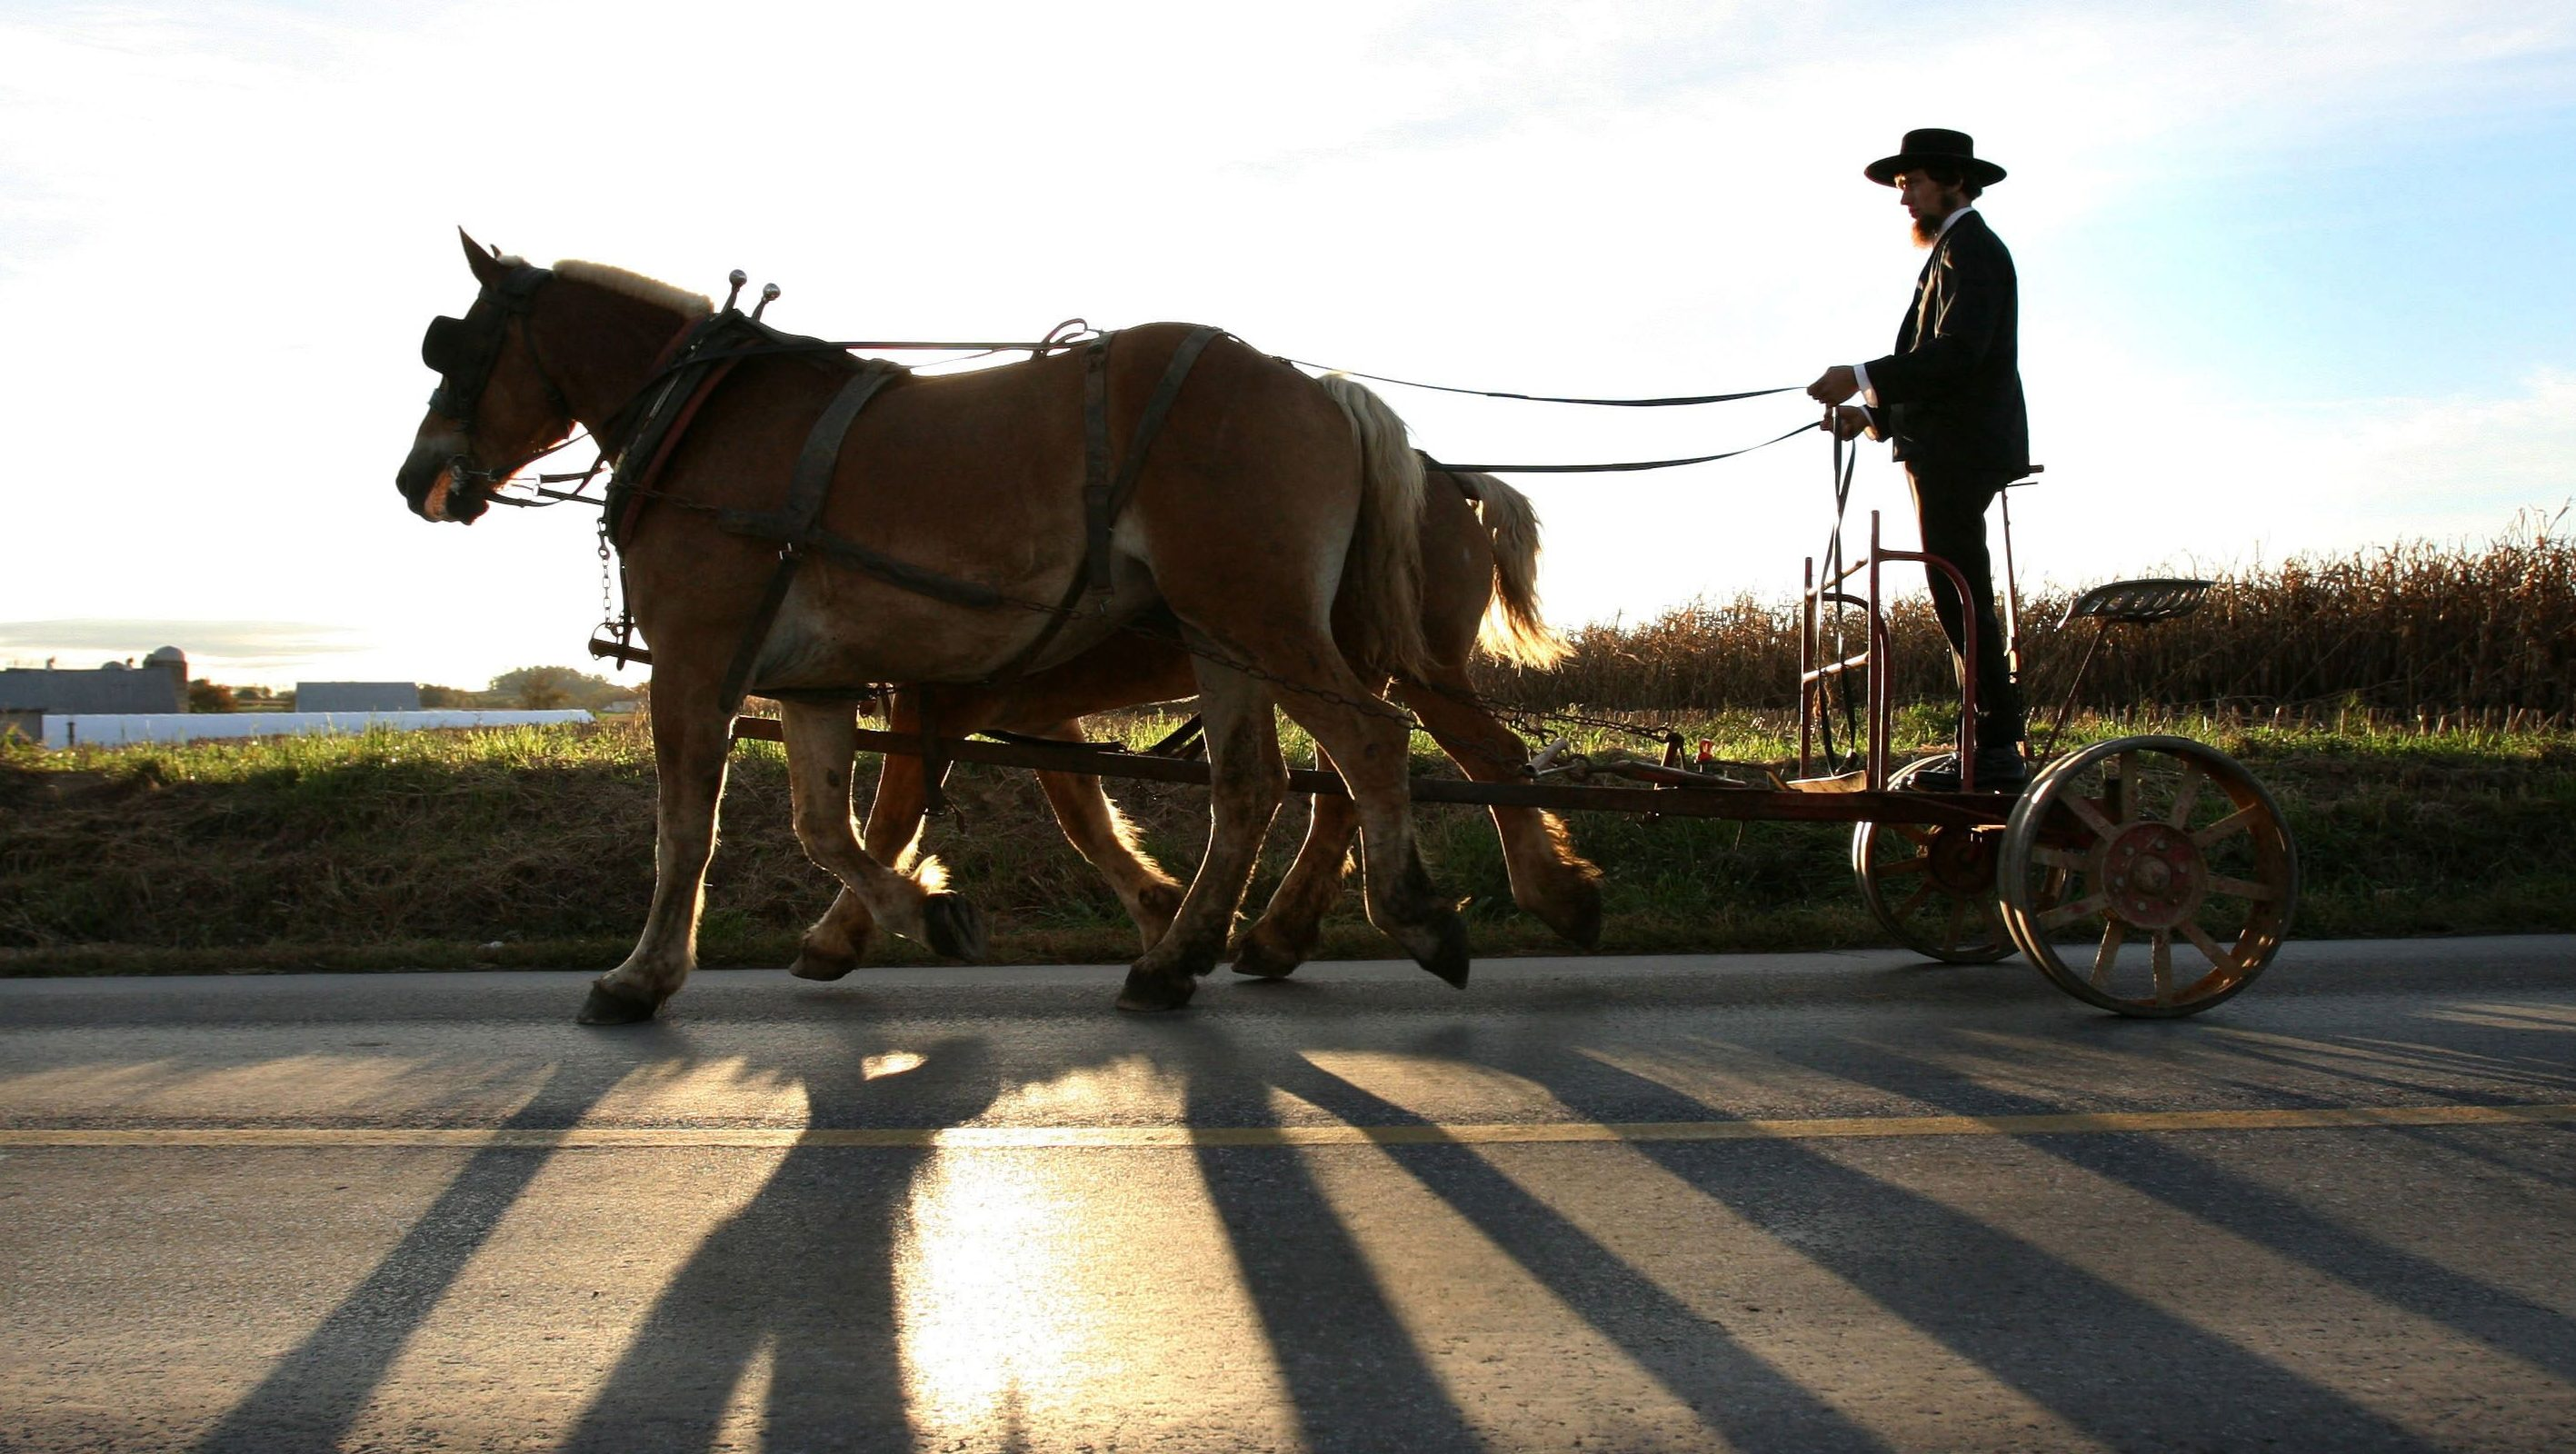 An Amish man rides his cart down Mine Rd to a funeral ceremony for victims of the Amish school shootings in Nickel Mines, Pennsylvania, October 5, 2006. The Amish community prepared for the funerals of the victims of Monday's schoolhouse shooting in Nickel Mines.        REUTERS/Jason Reed    (UNITED STATES) - GF2DTQROINAA